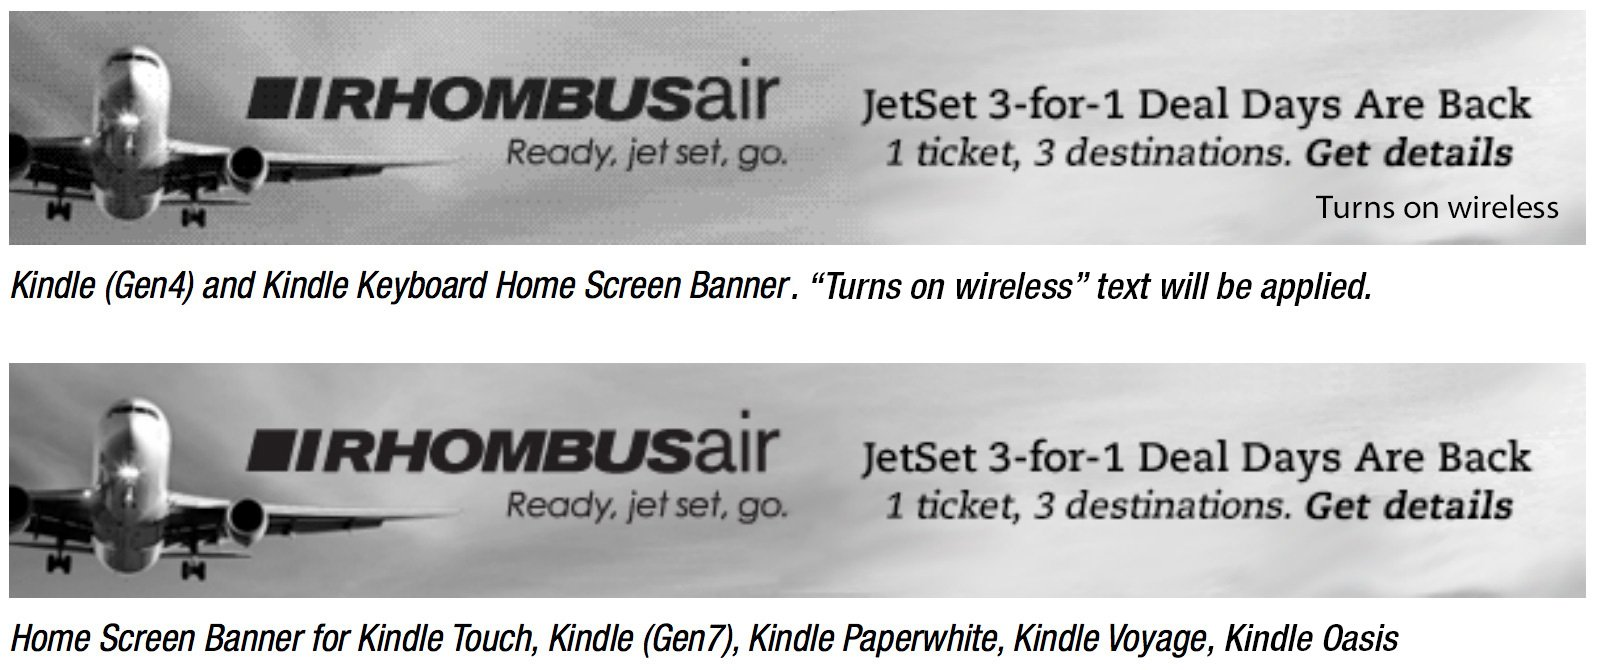 Kindle Home Screen Banners CTA and